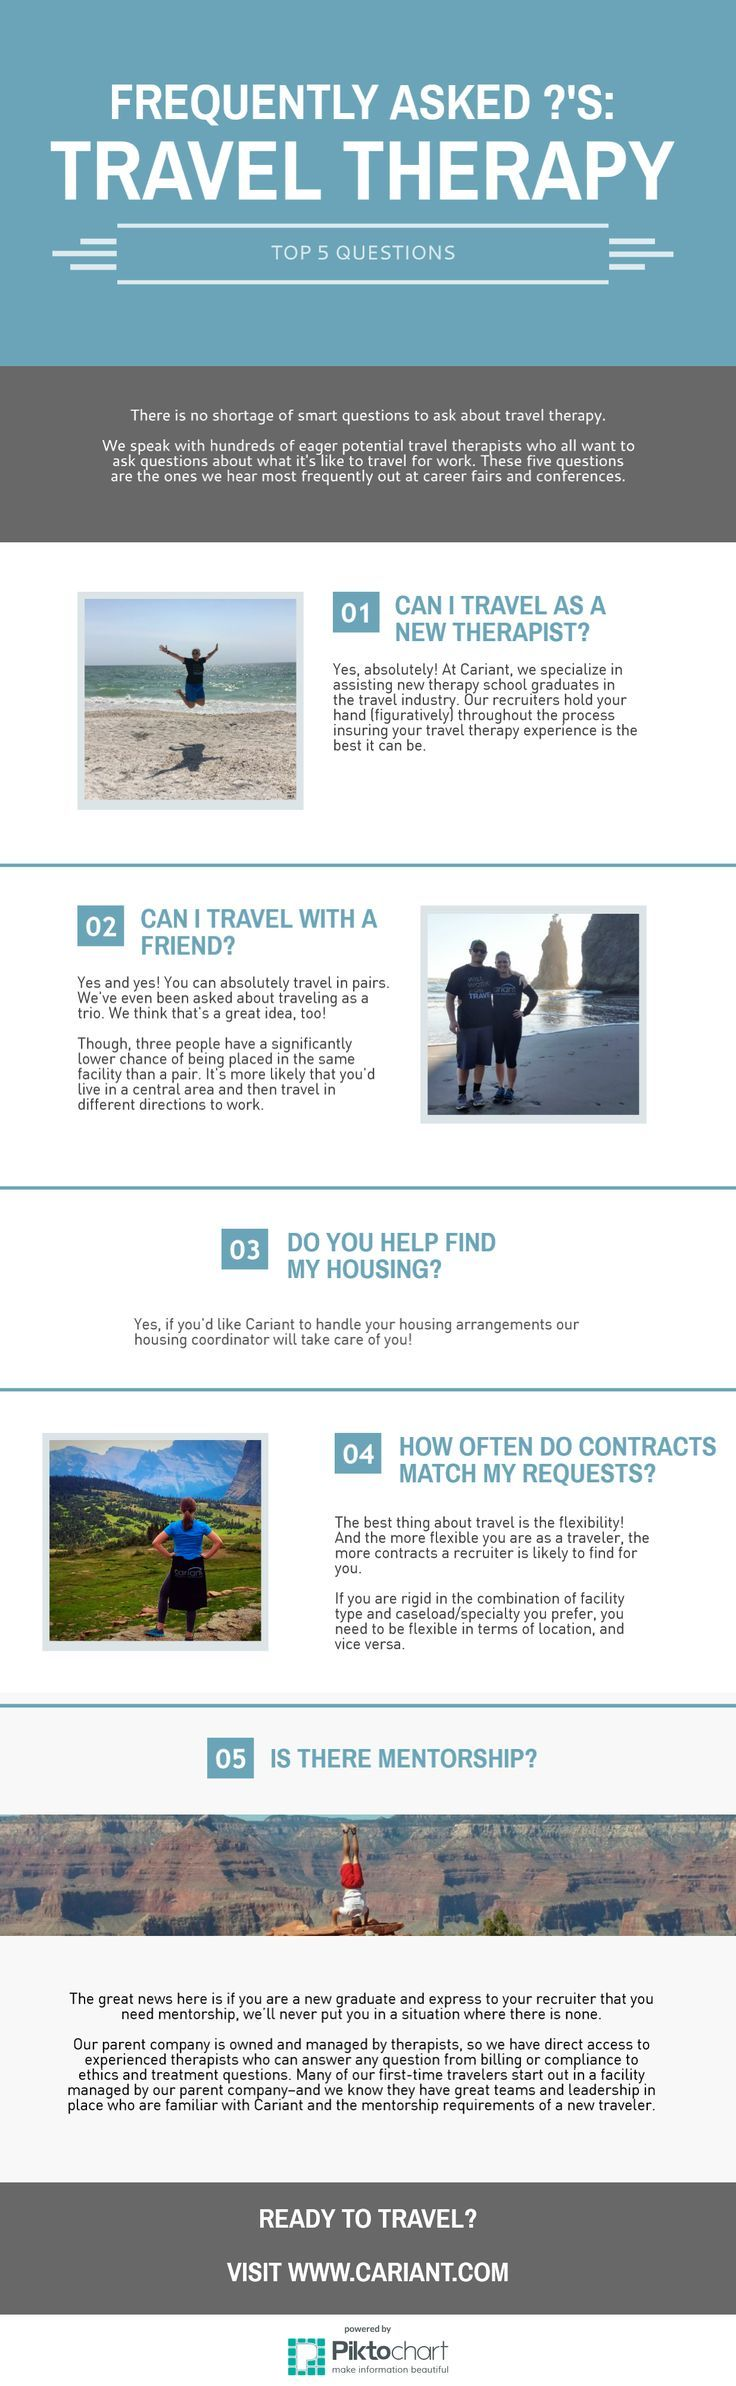 INFOGRAPHIC Frequently asked questions about travel